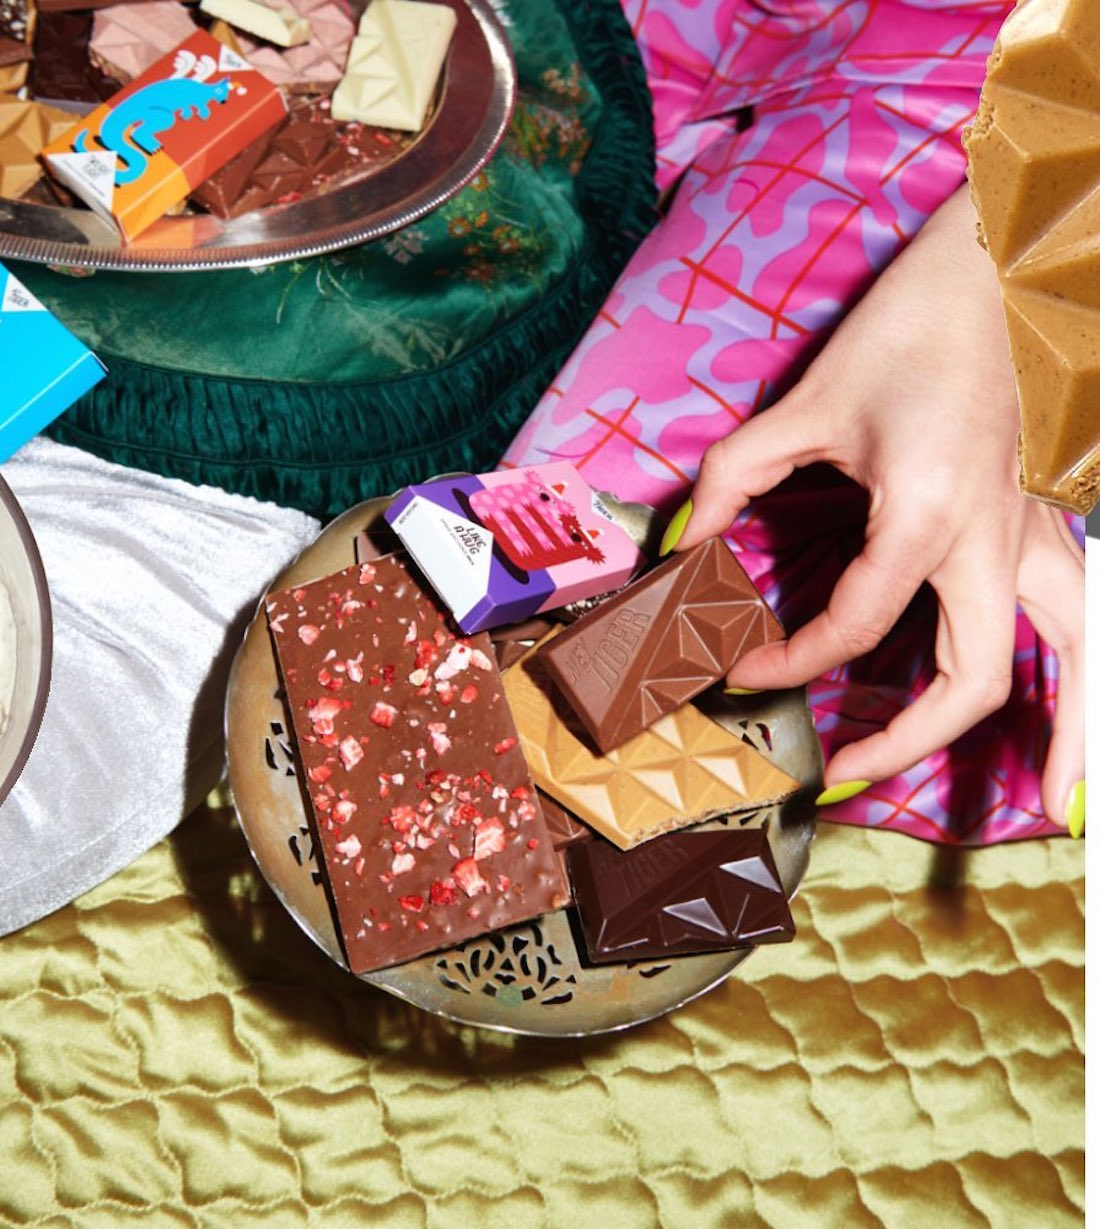 A hand reaches for a full plate of delicious Hey Tiger Co chocolate.